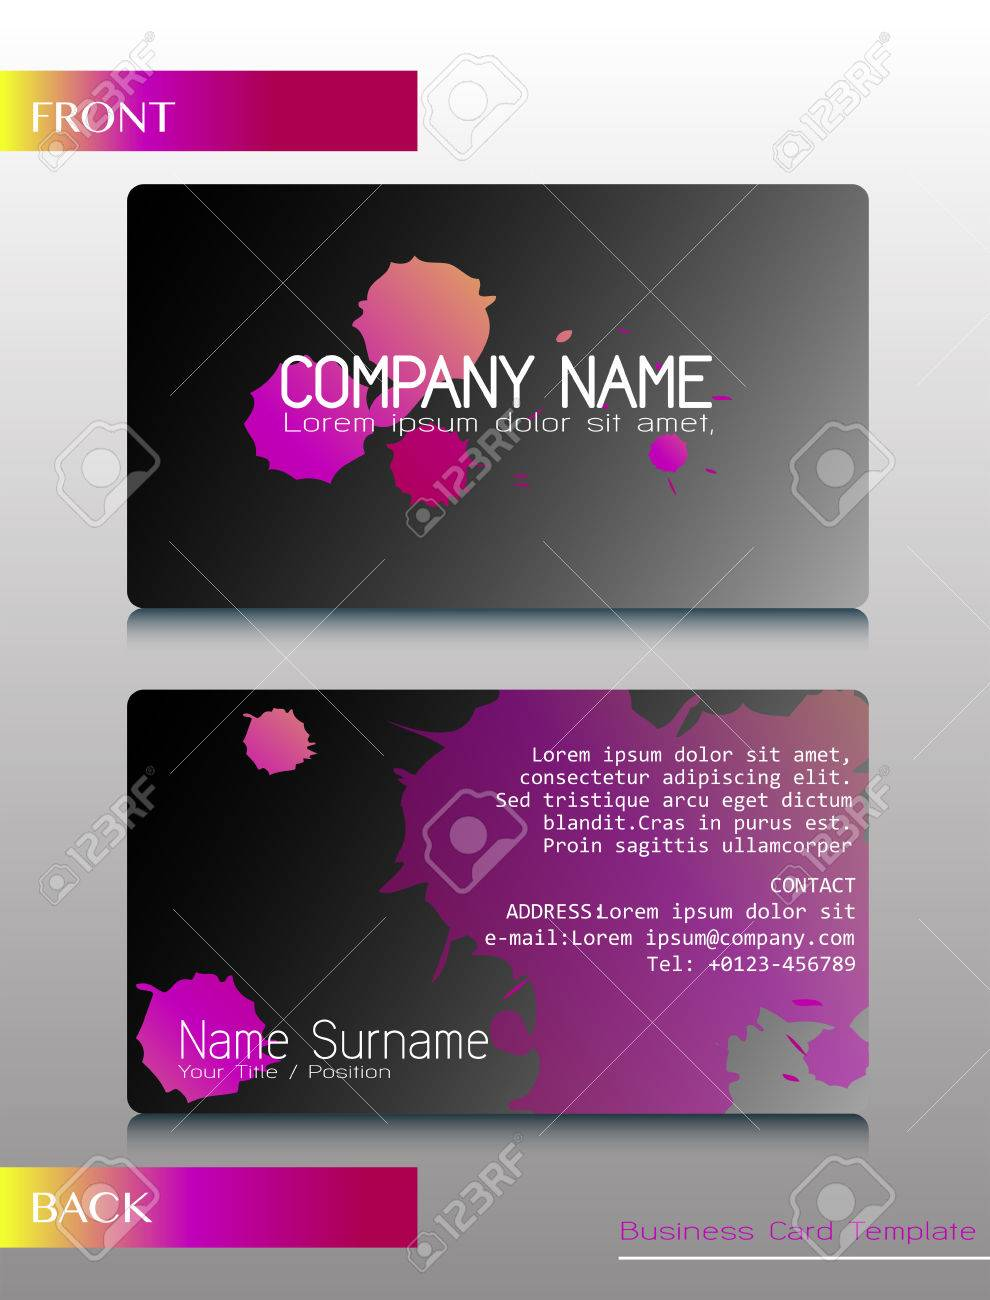 What to put on the back of a business card images free business back of a business card image collections free business cards a front and back design of magicingreecefo Gallery